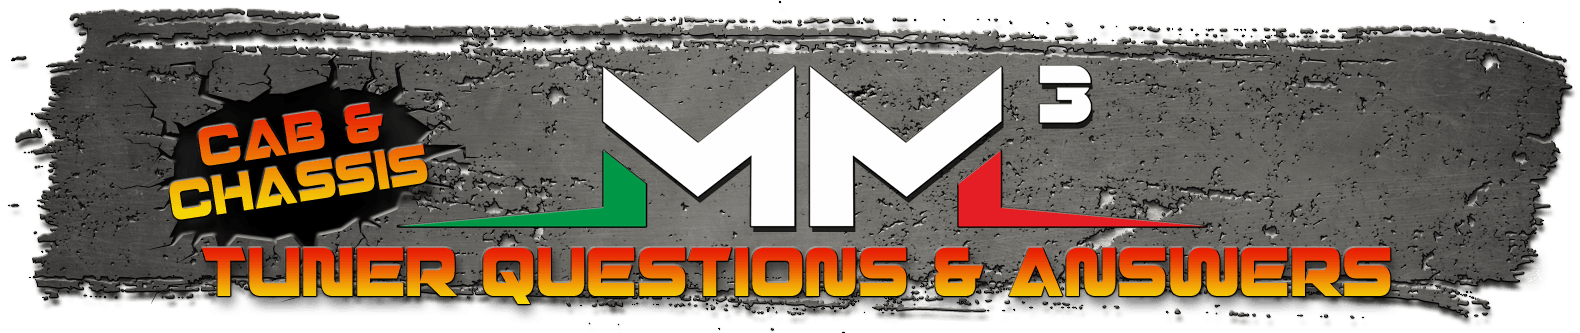 MM3 Tuner Cab and Chassis Questions & Answers